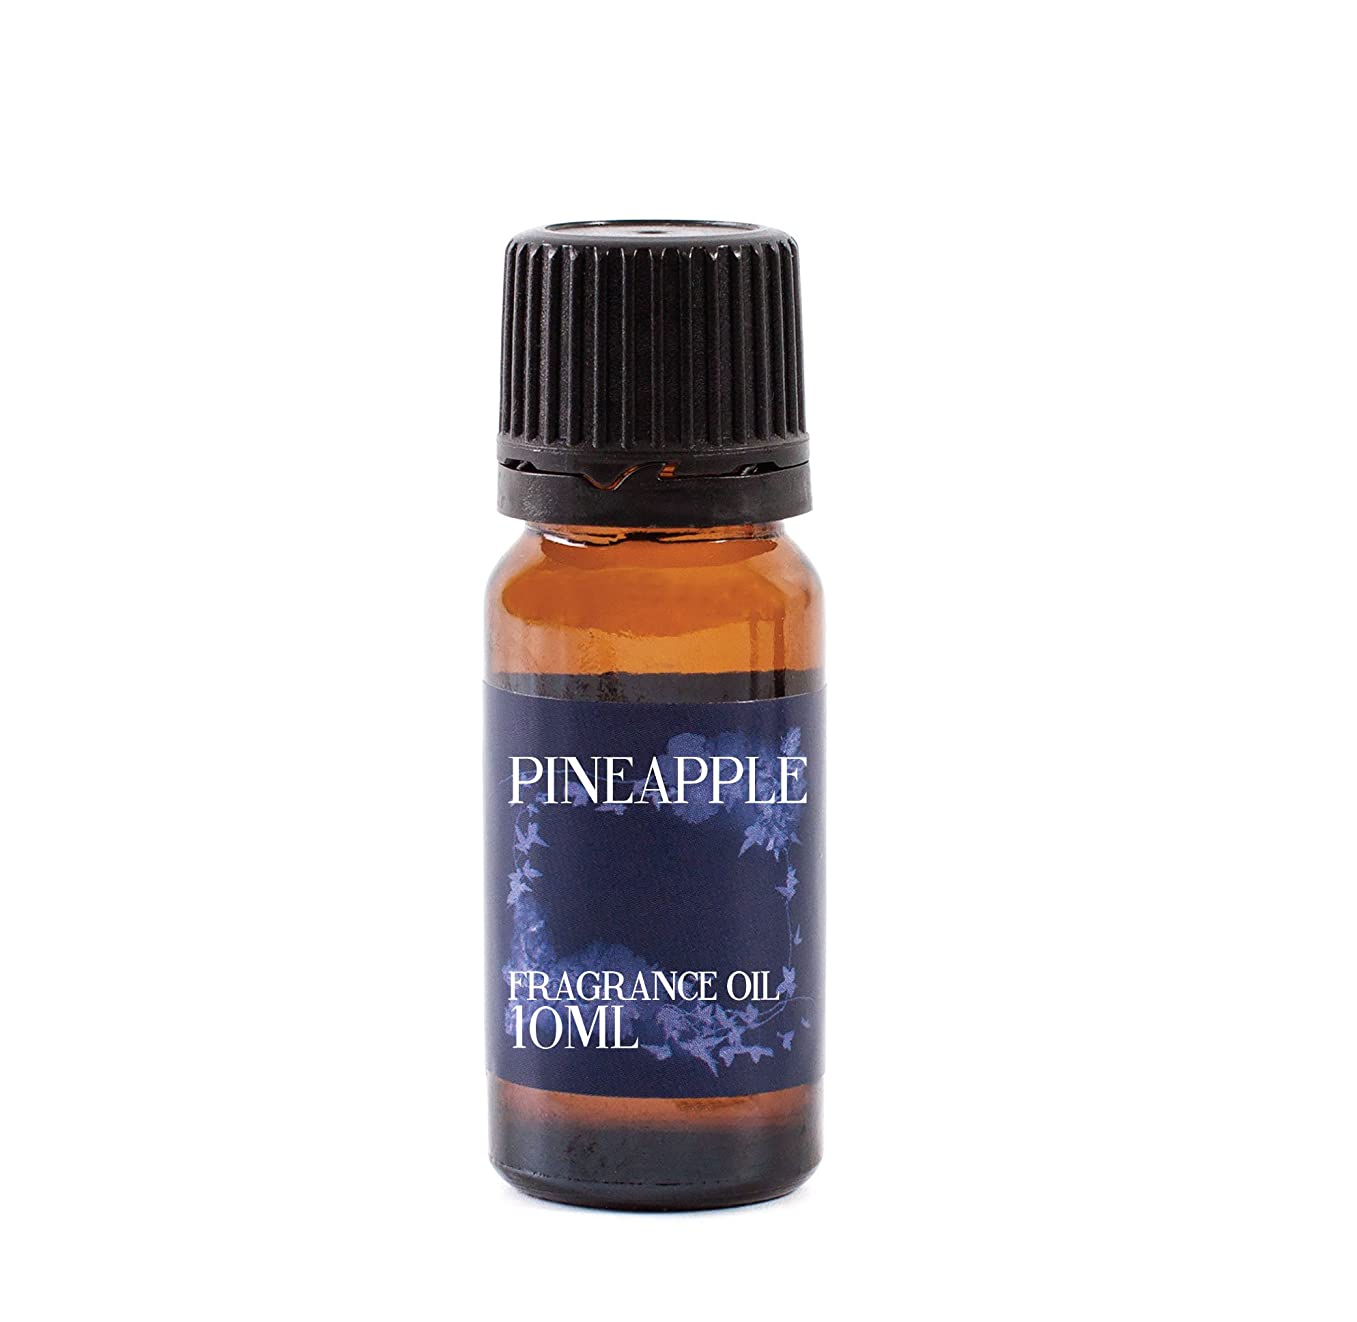 非常にストレージブッシュMystic Moments | Pineapple Fragrance Oil - 10ml